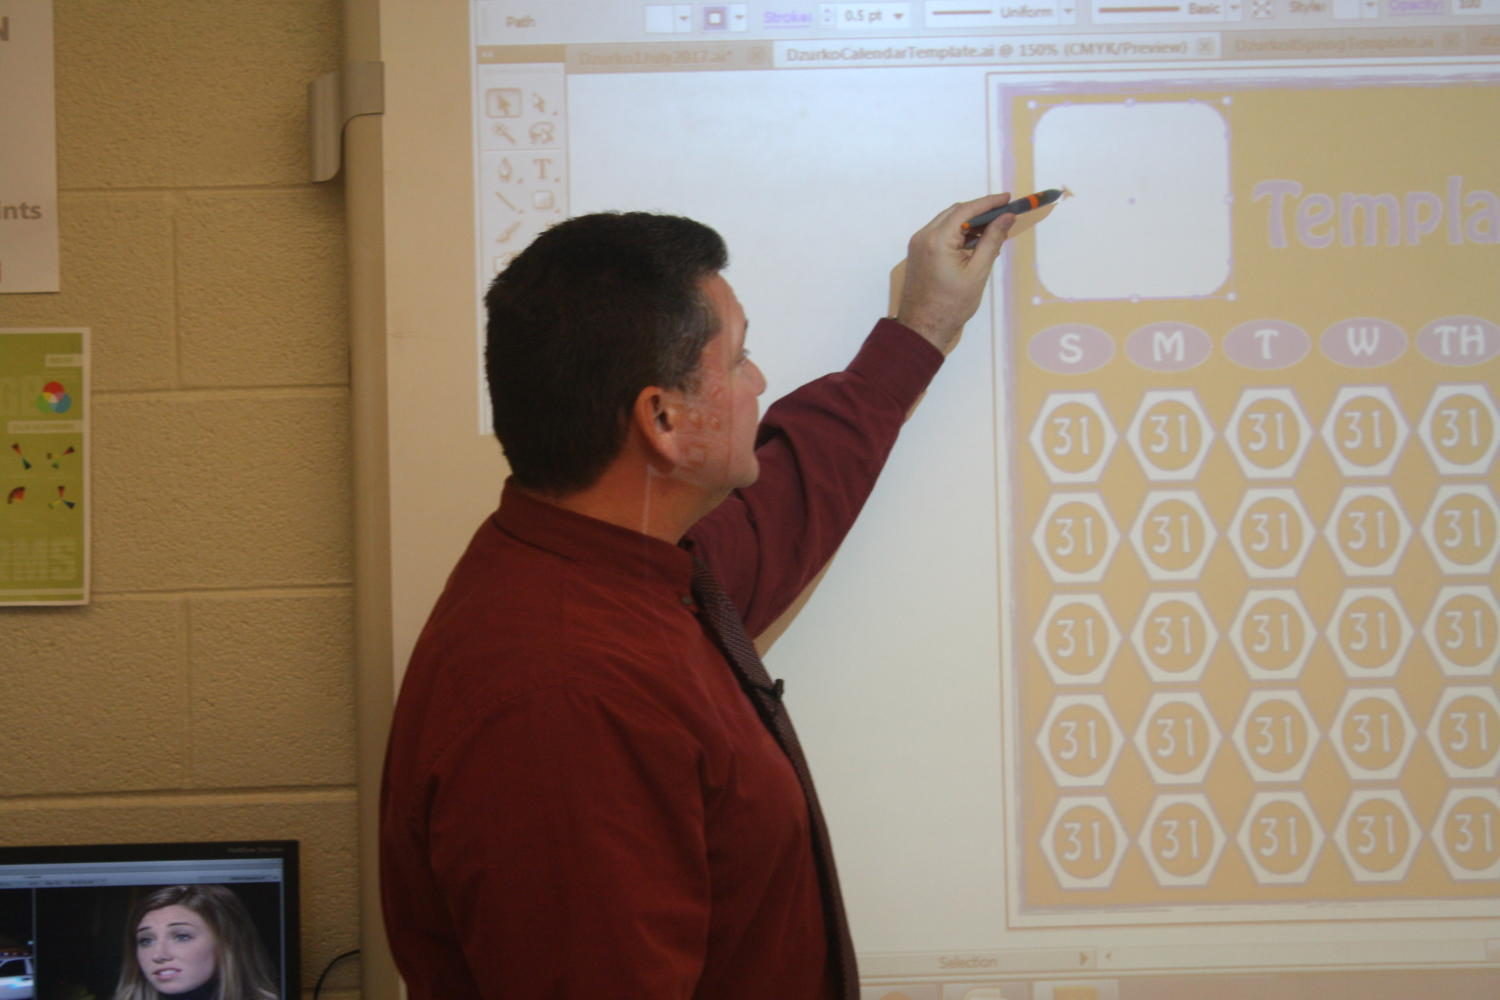 Tim Dzurko instructs his class from the smartboard.